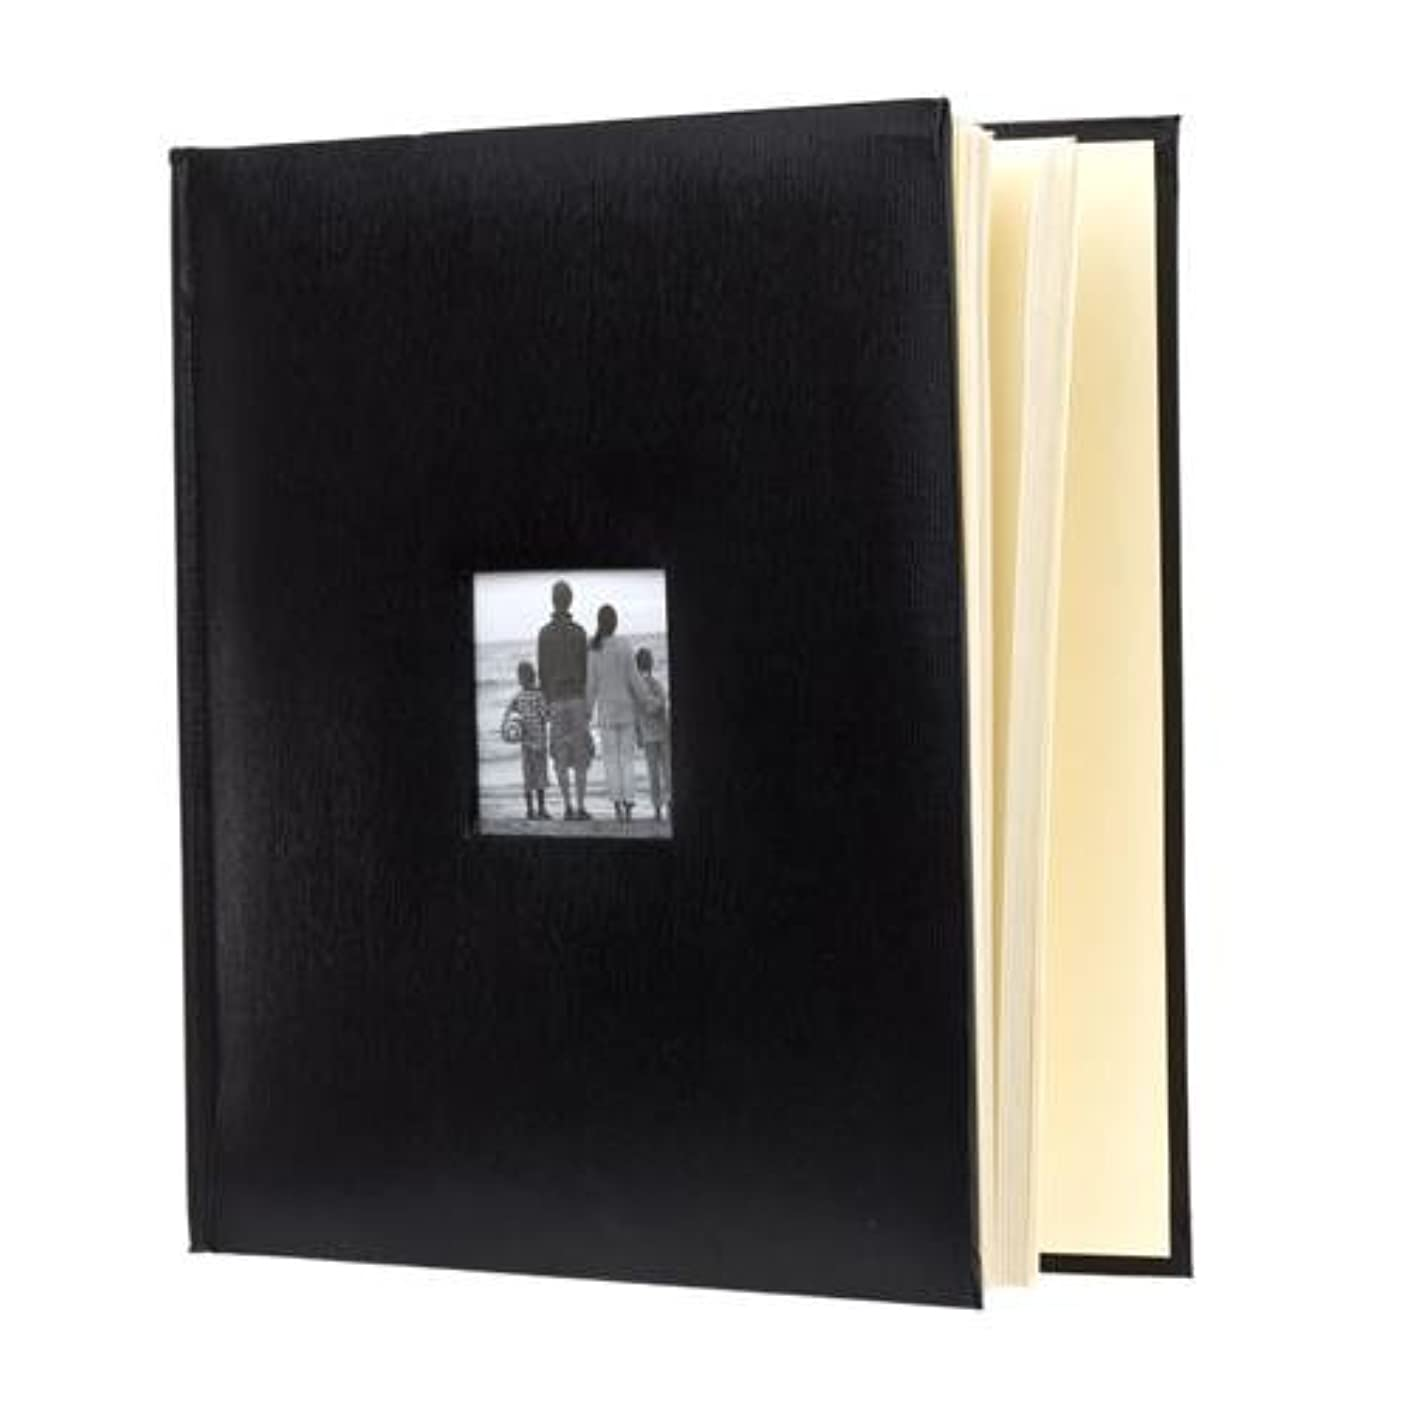 KVD Kleer-Vu Deluxe Albums, Leatherette Collection, 500 Photos, Photo Album Window Frame on Front Cover, Black